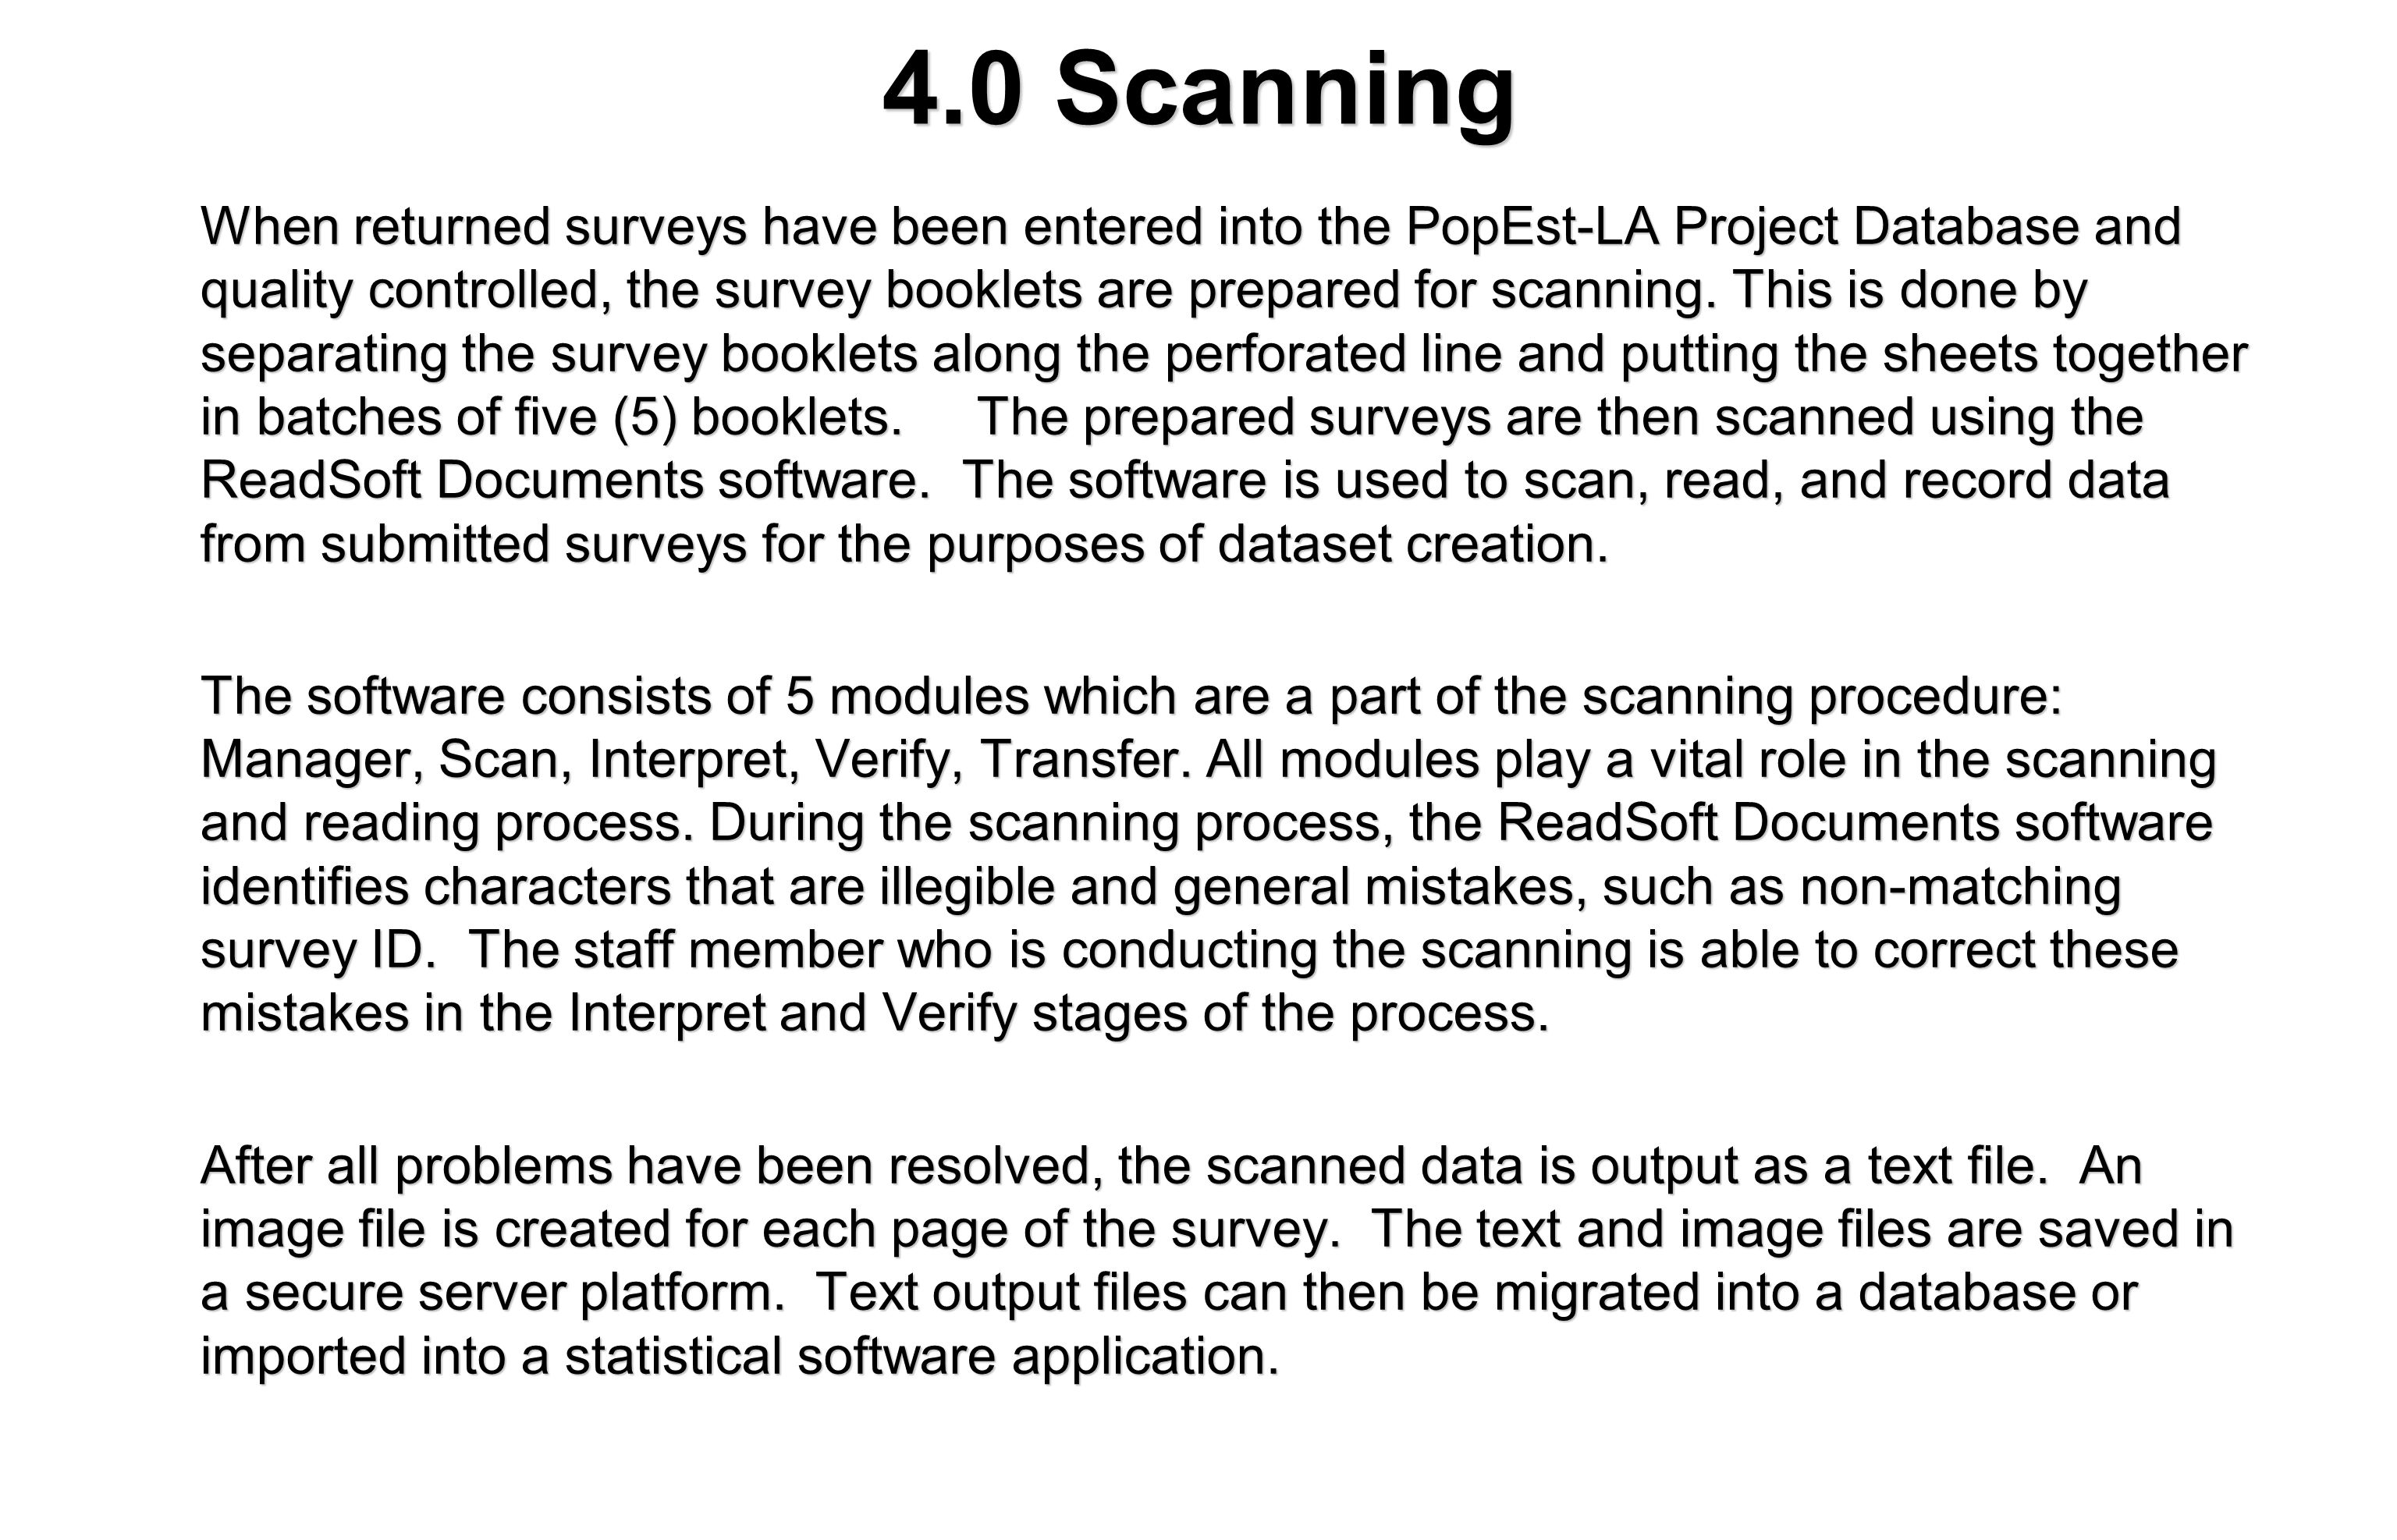 4.0 Scanning When returned surveys have been entered into the PopEst-LA Project Database and quality controlled, the survey booklets are prepared for scanning.